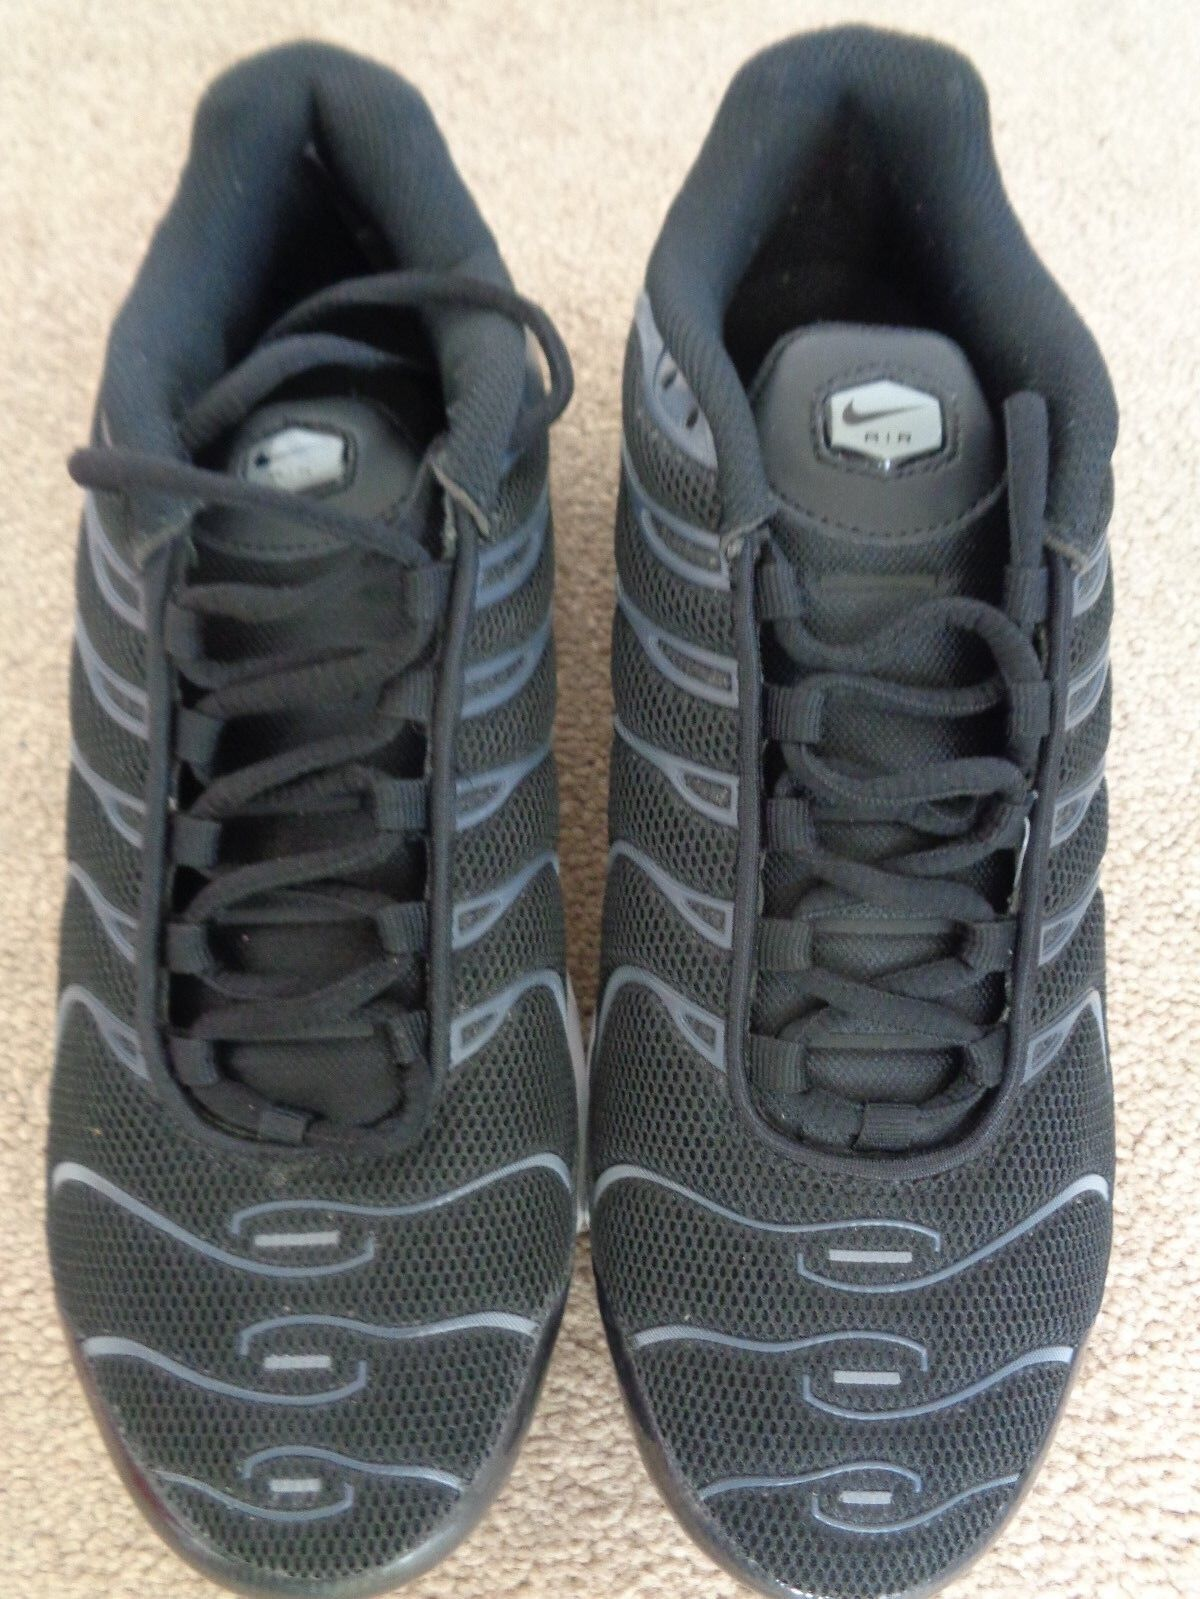 Nike Air sneakers max plus TXT trainers sneakers Air shoes 647315 002 eu 40 us 7 NEW+BOX f0479e